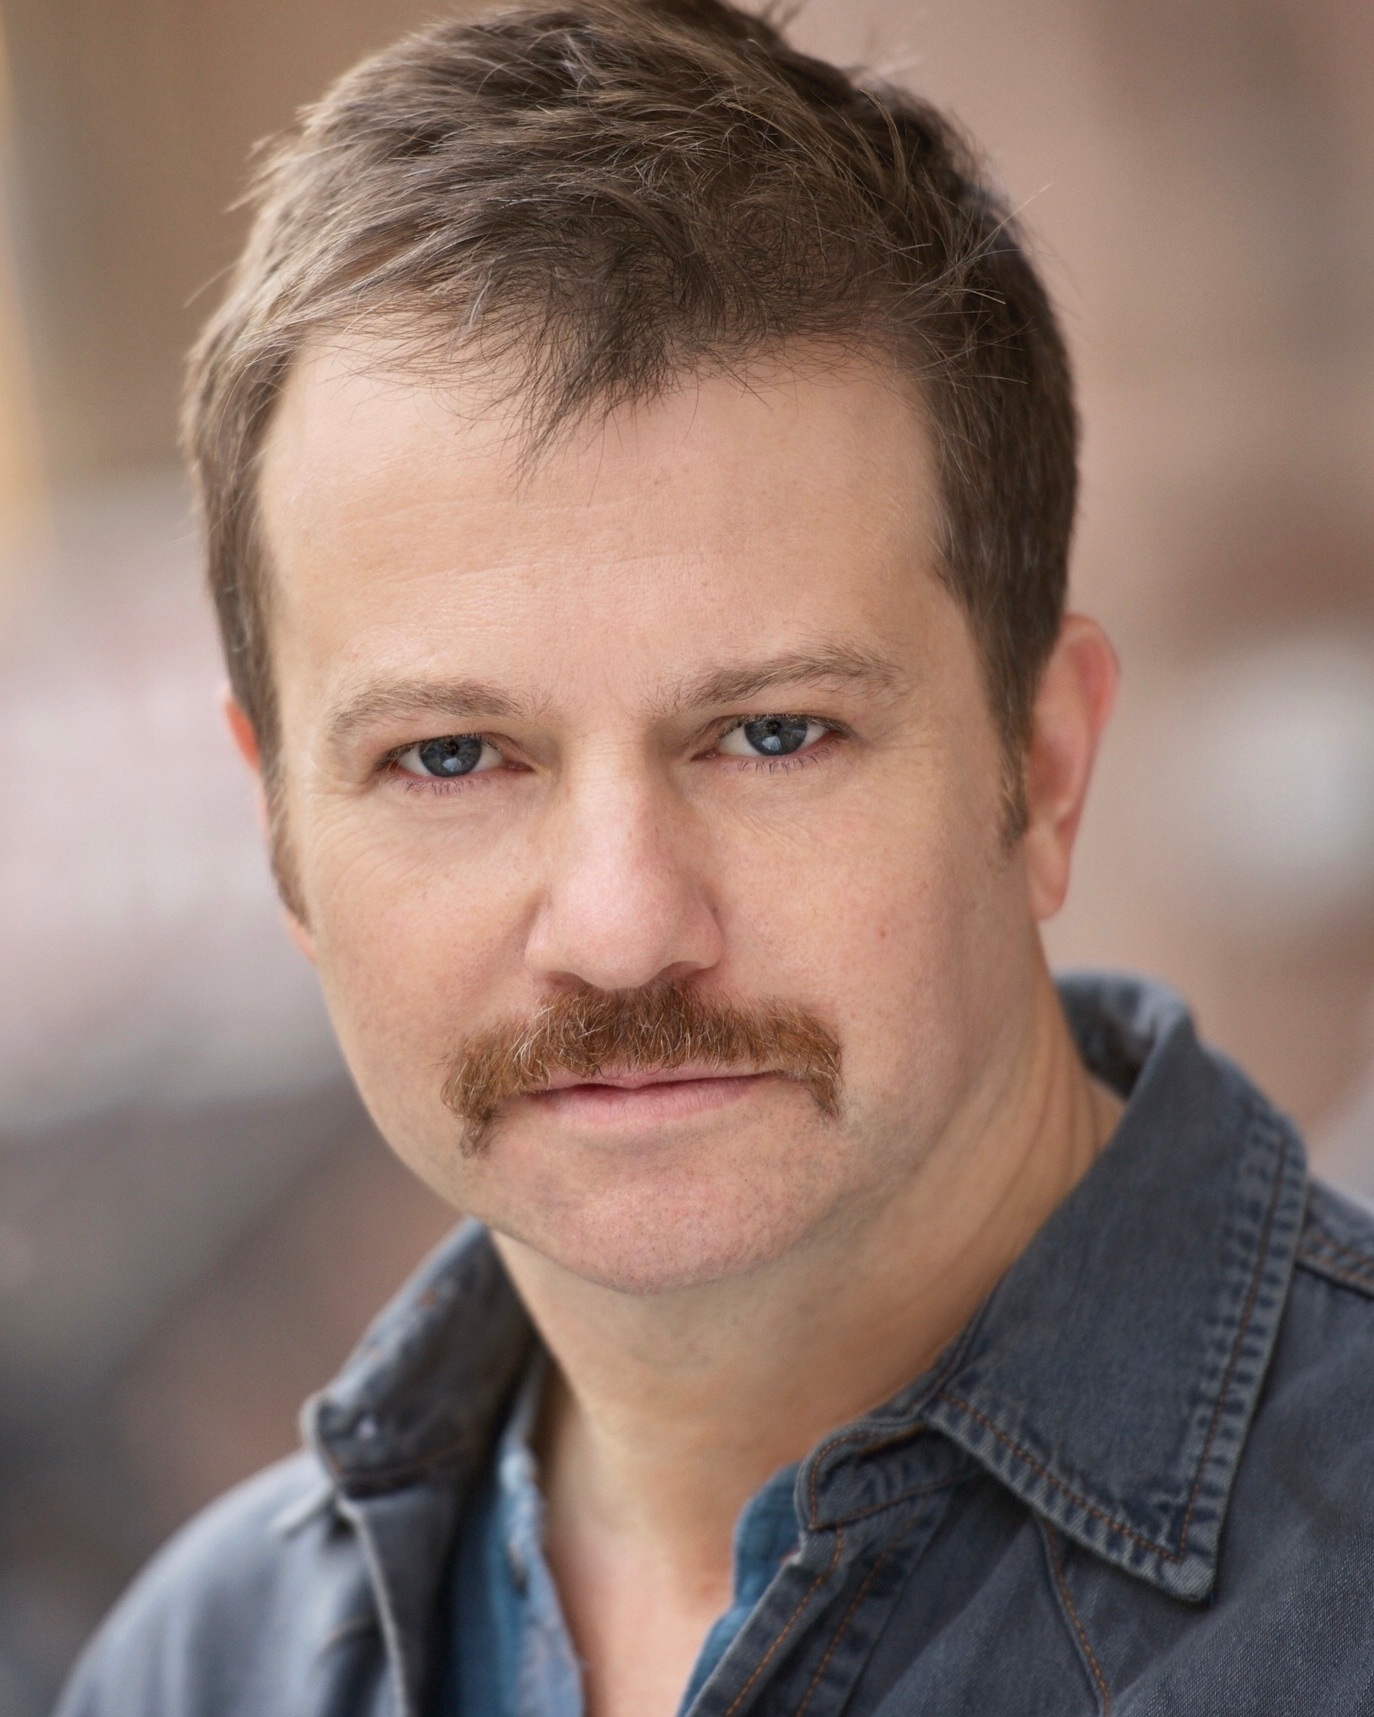 LARS ENGSTROM - Huge congrats to client Lars Engstrom for his booking on NBC's THE BLACKLIST.